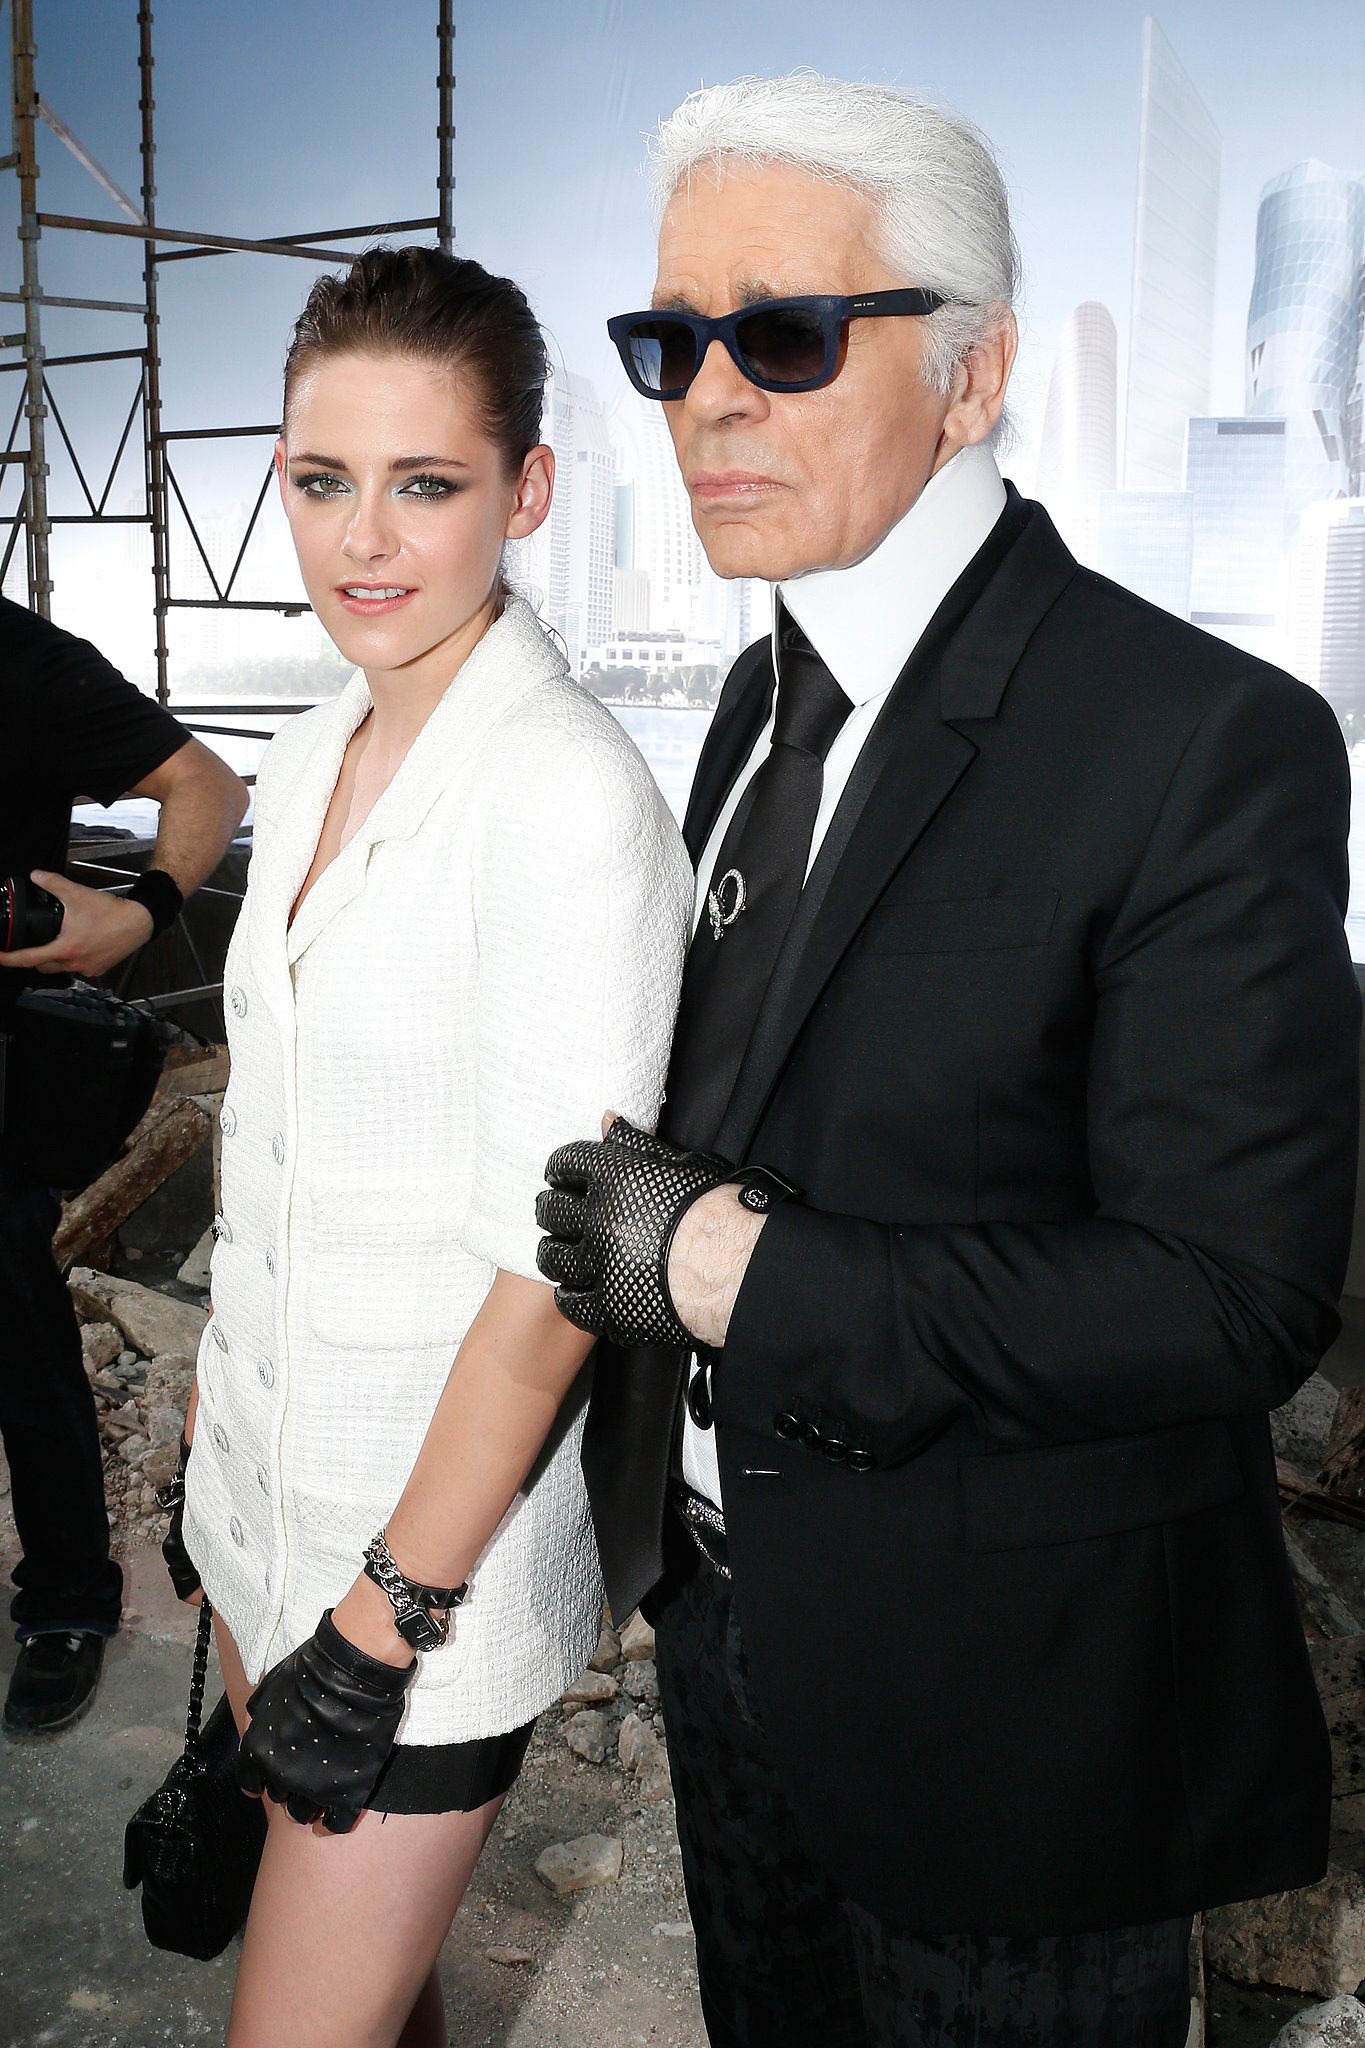 Kristen Stewart and Karl Lagerfeld shared a shot on the runway